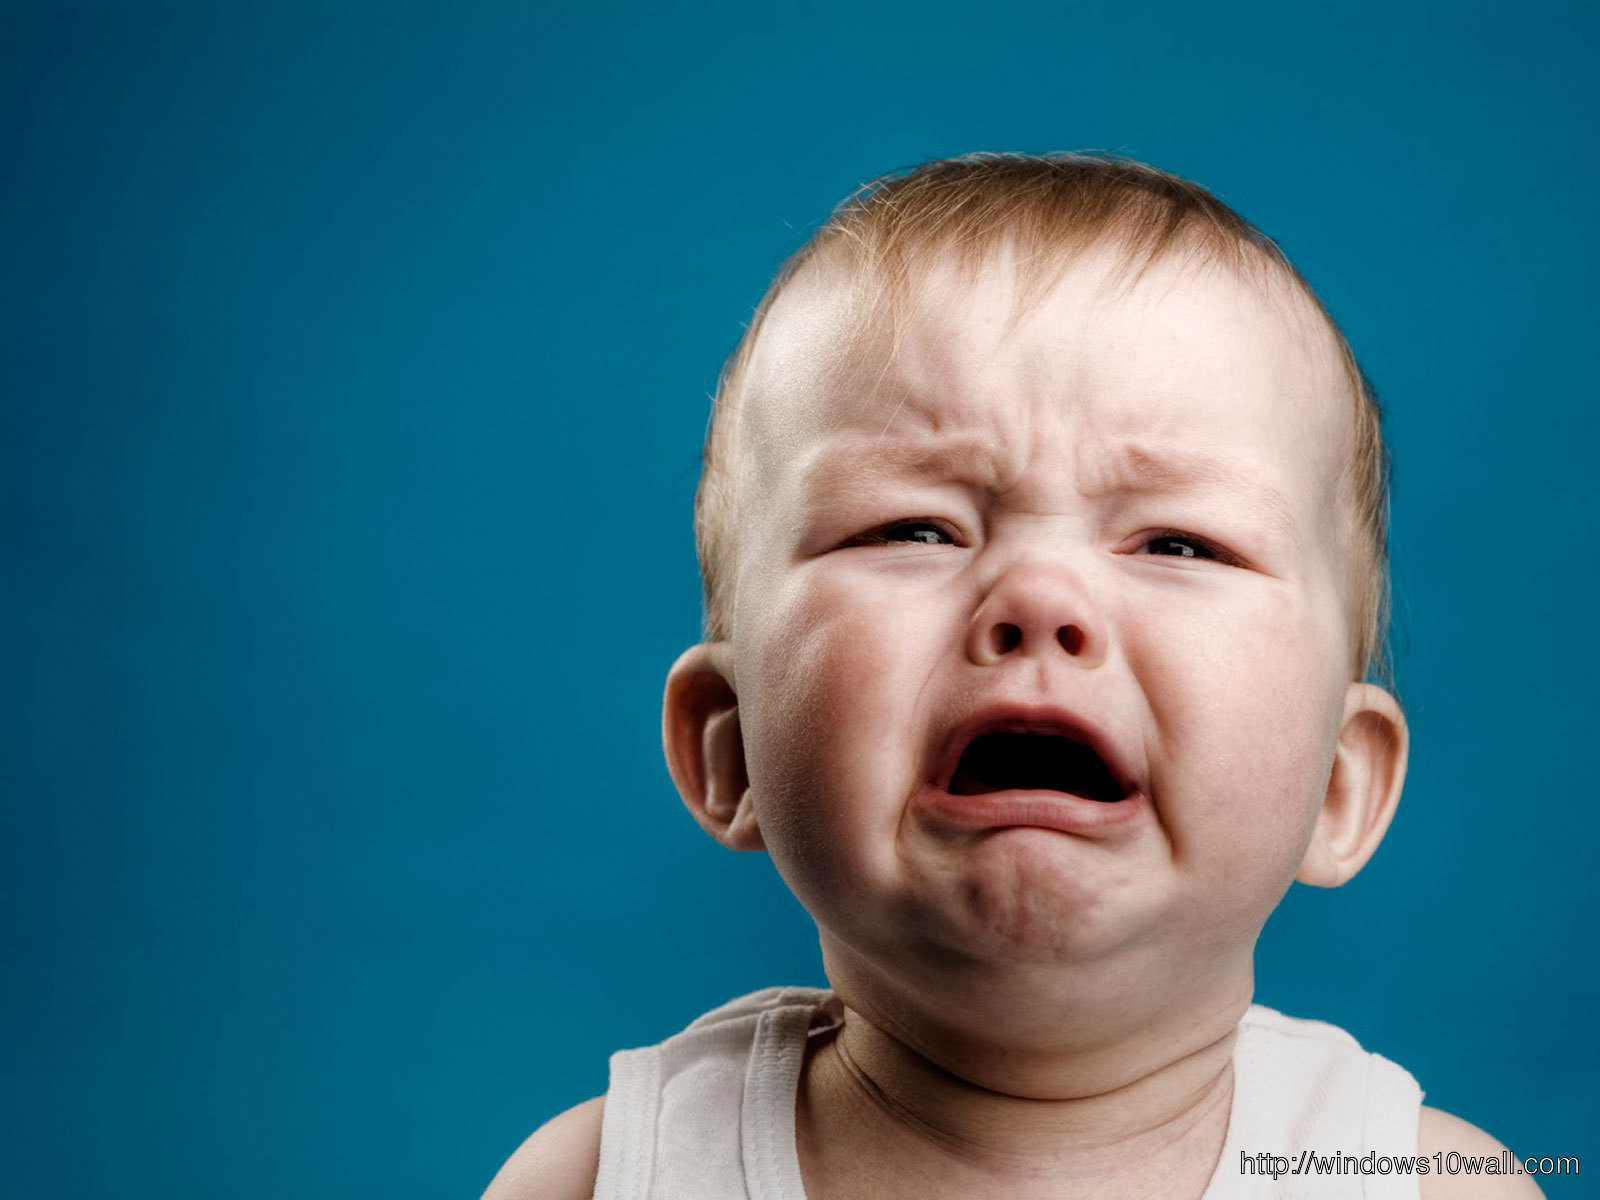 New Funny Baby Crying Background Wallpaper